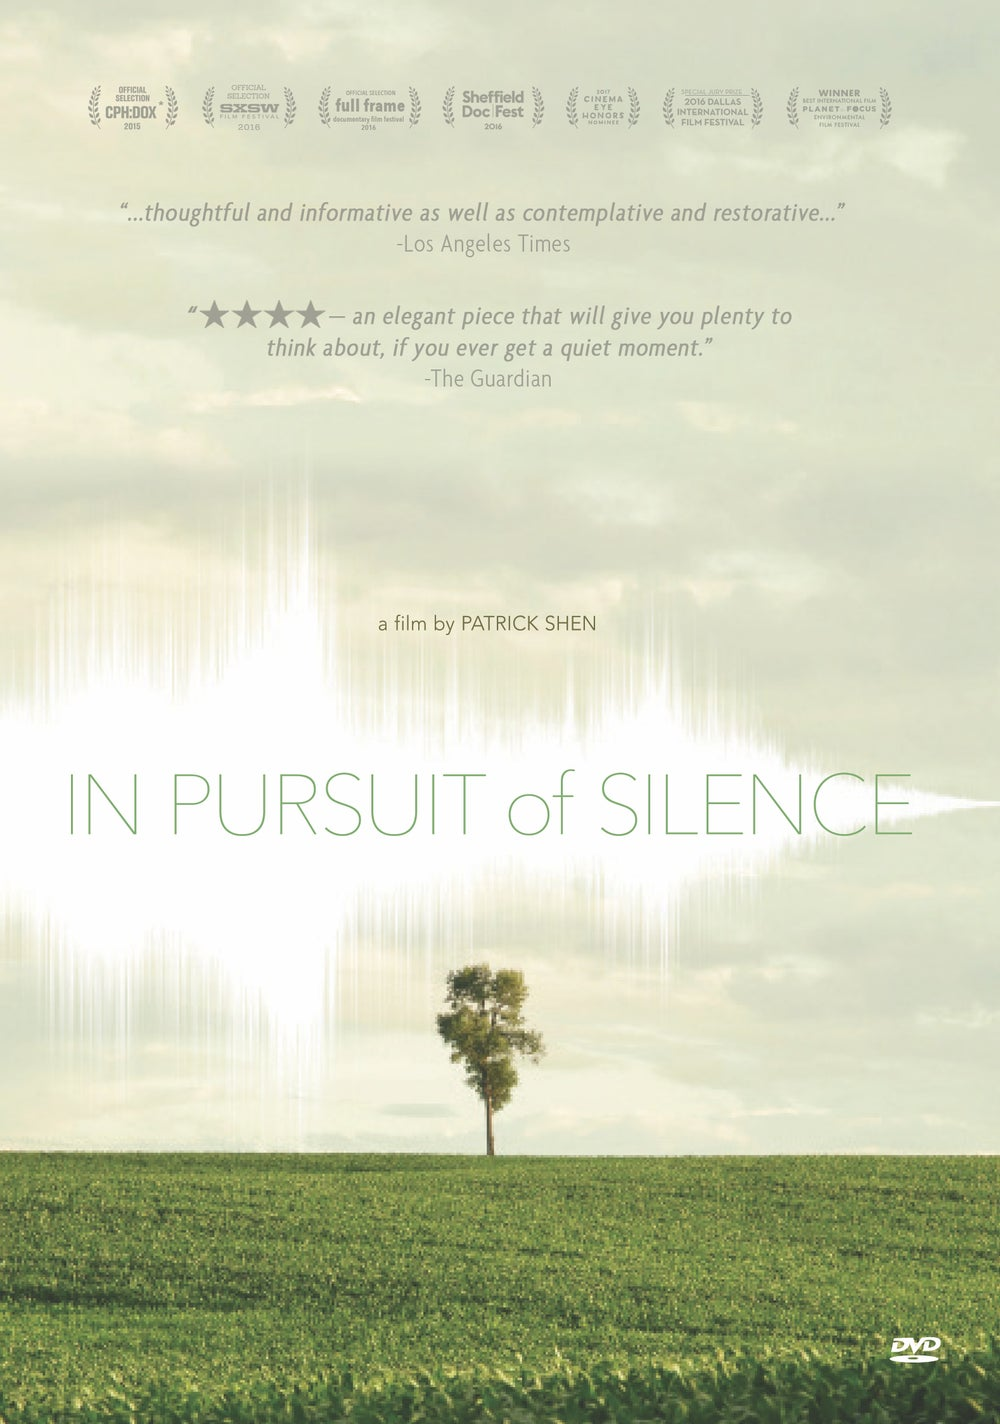 In Pursuit of Silence DVD or Blu-Ray (Retail Edition)